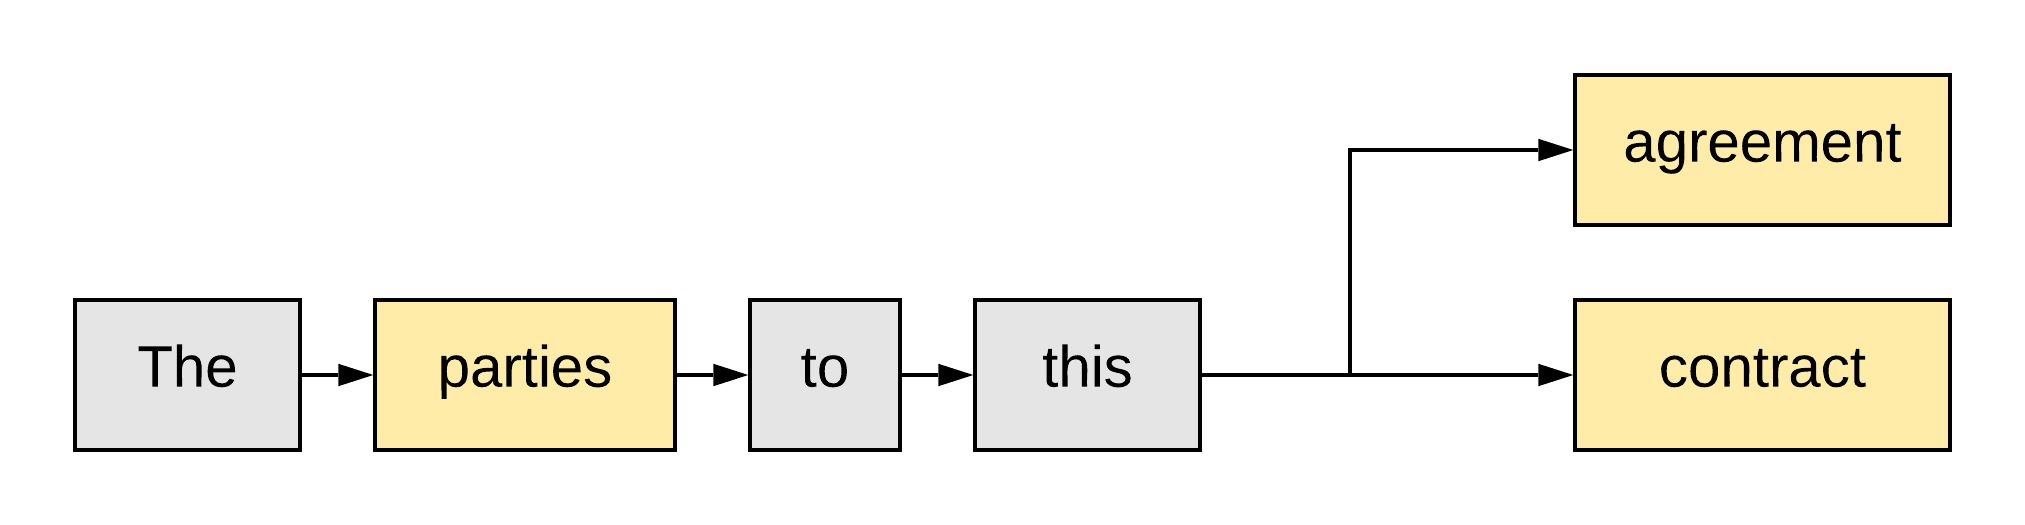 word embedding example